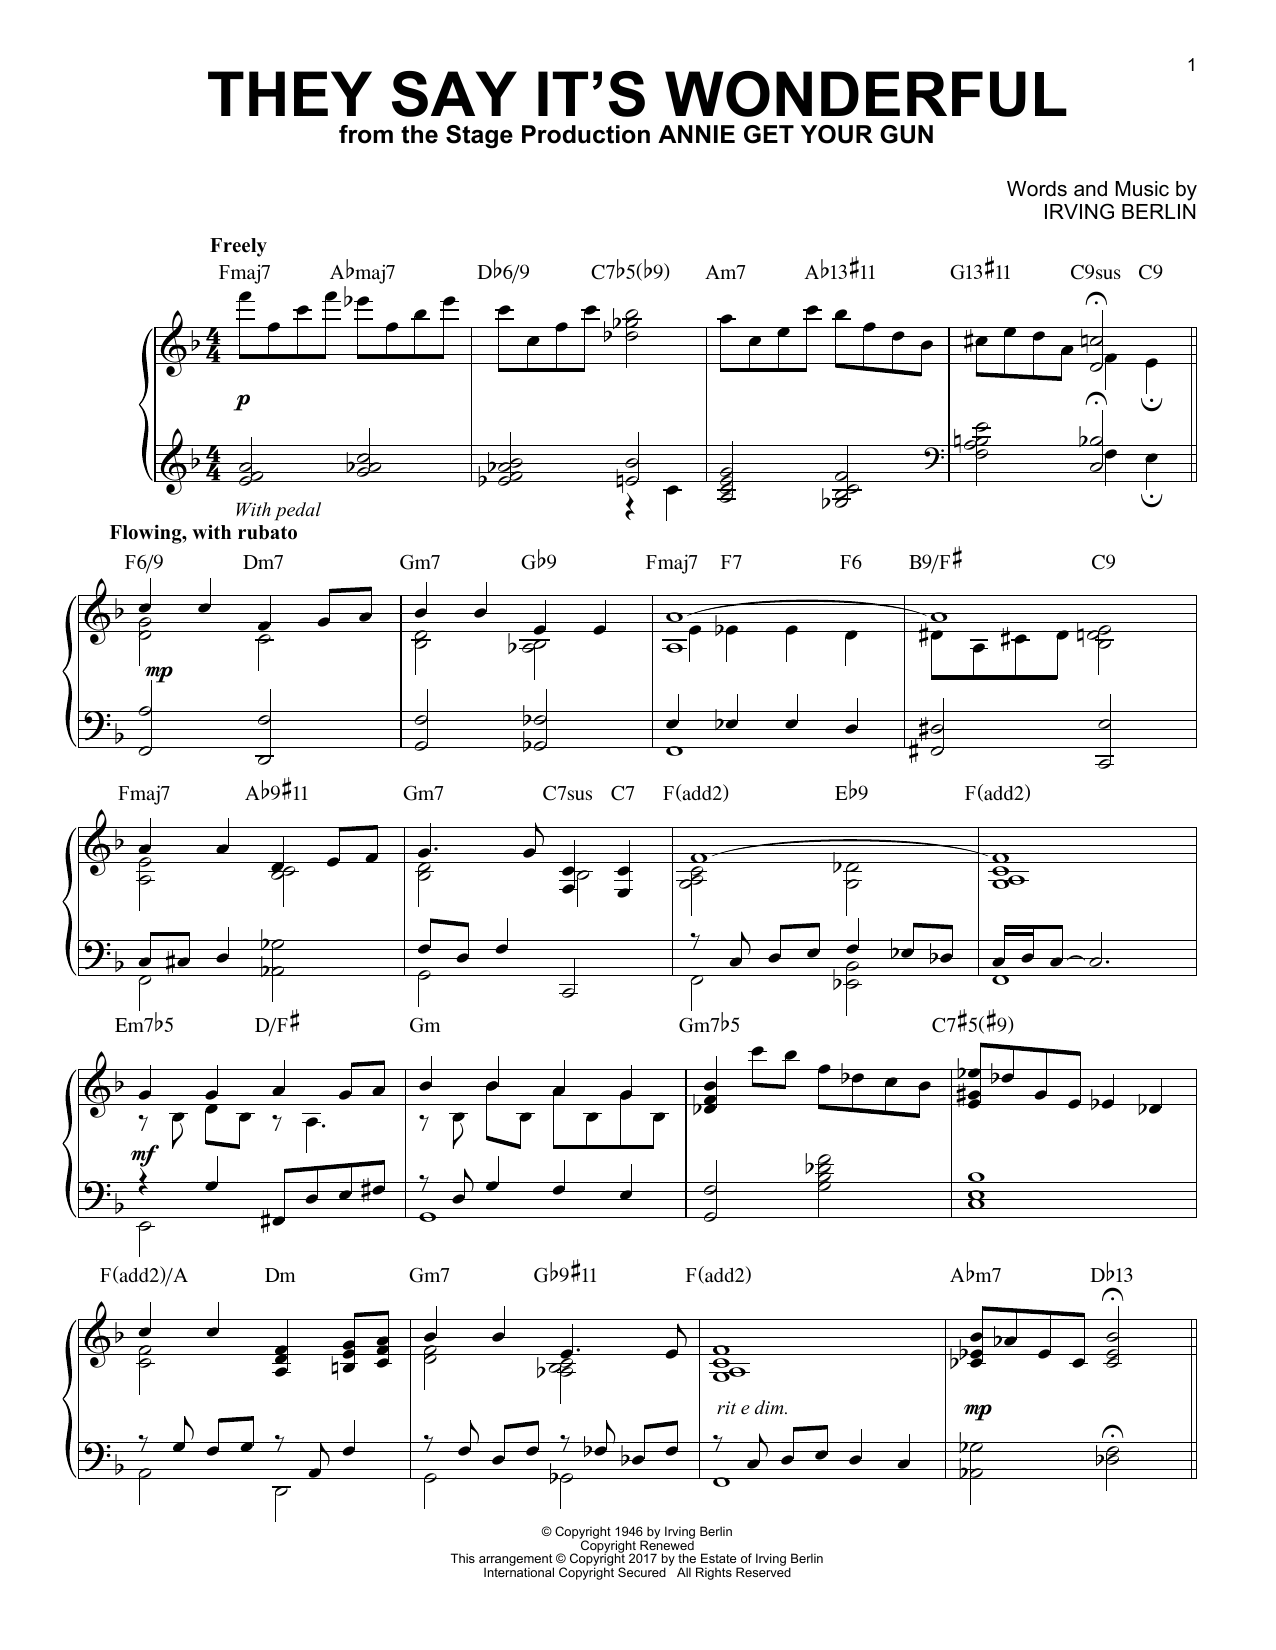 Irving Berlin They Say It's Wonderful [Jazz version] sheet music notes and chords. Download Printable PDF.